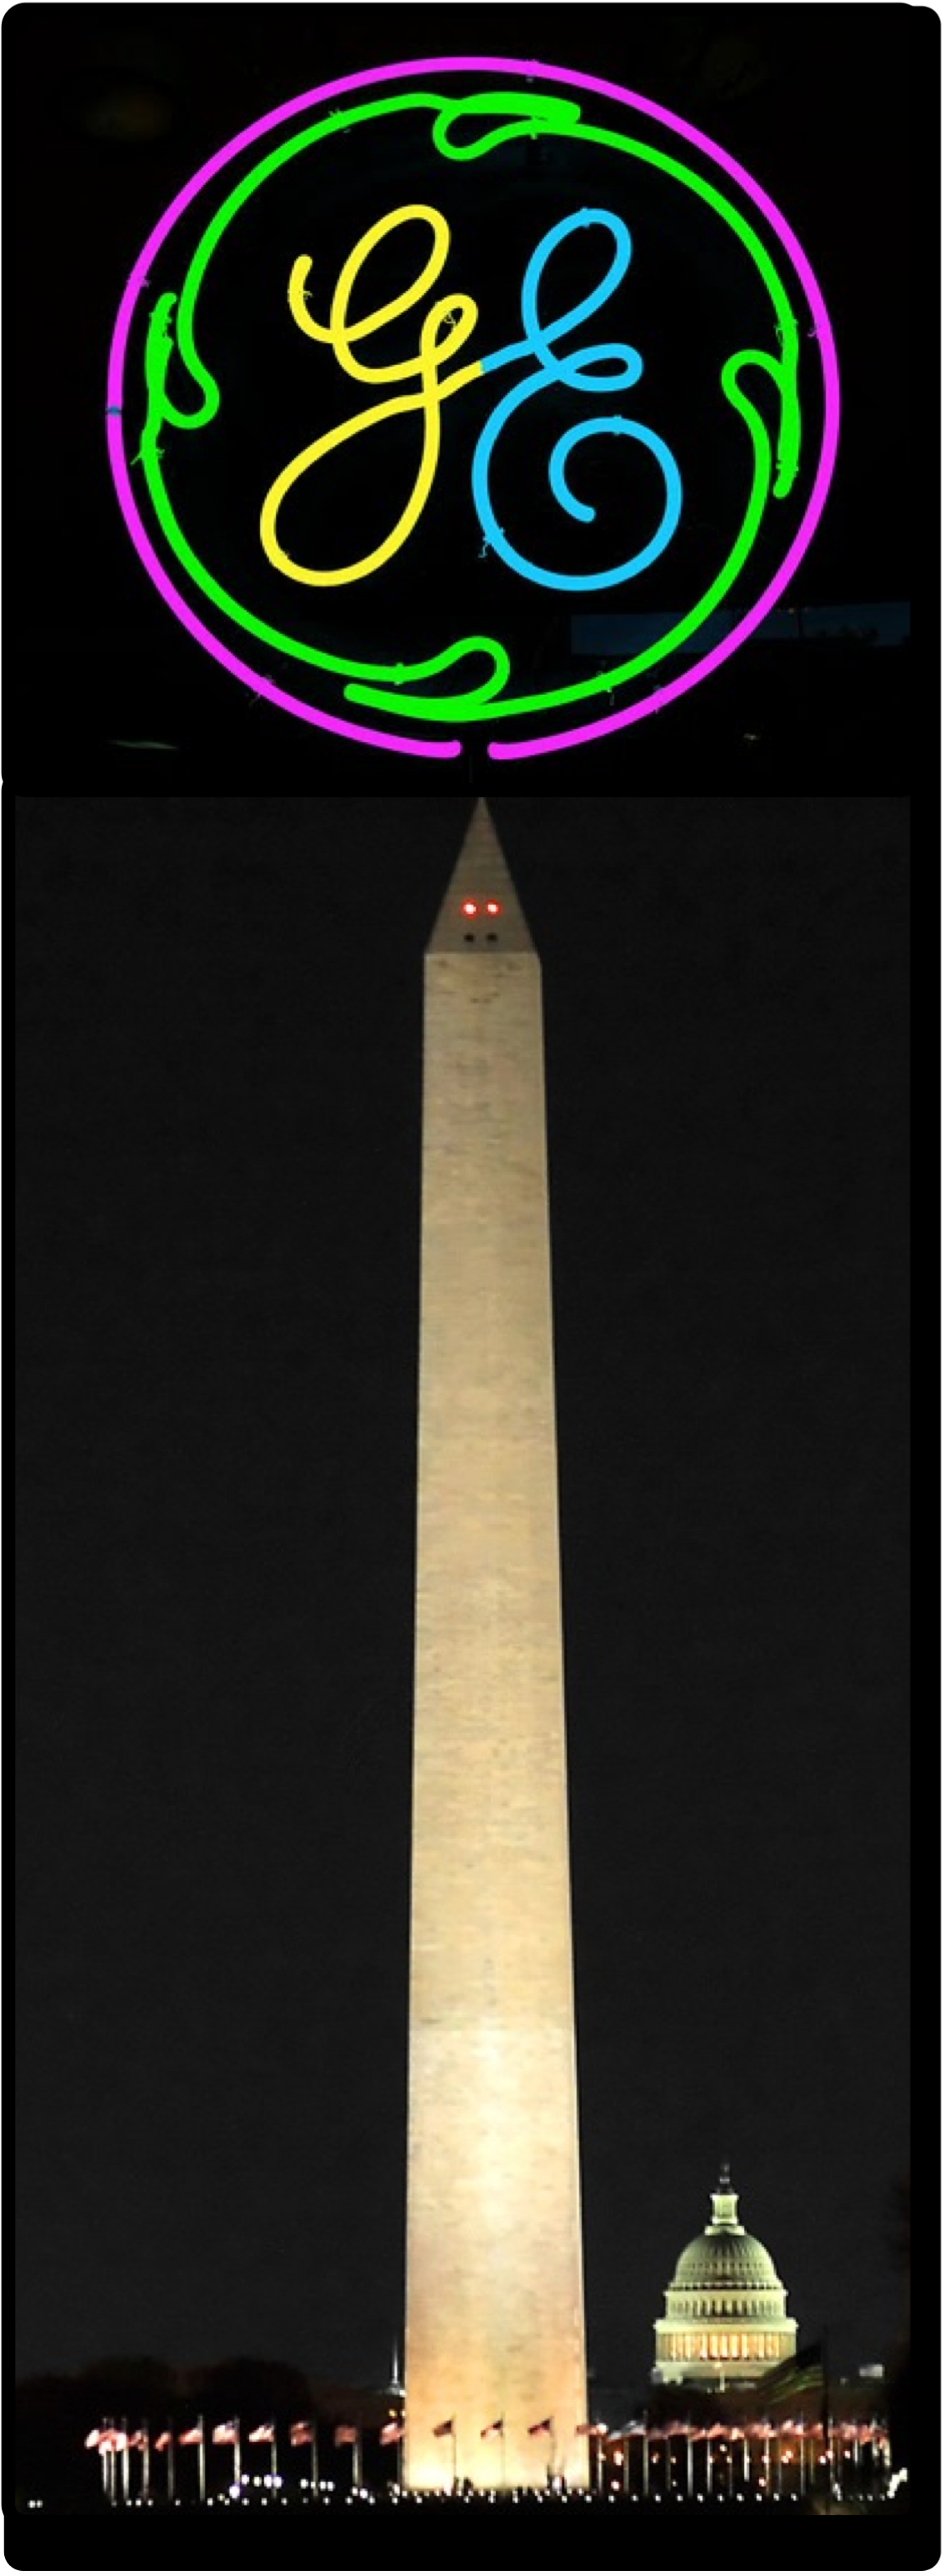 April Fools GE Washington Monument logo